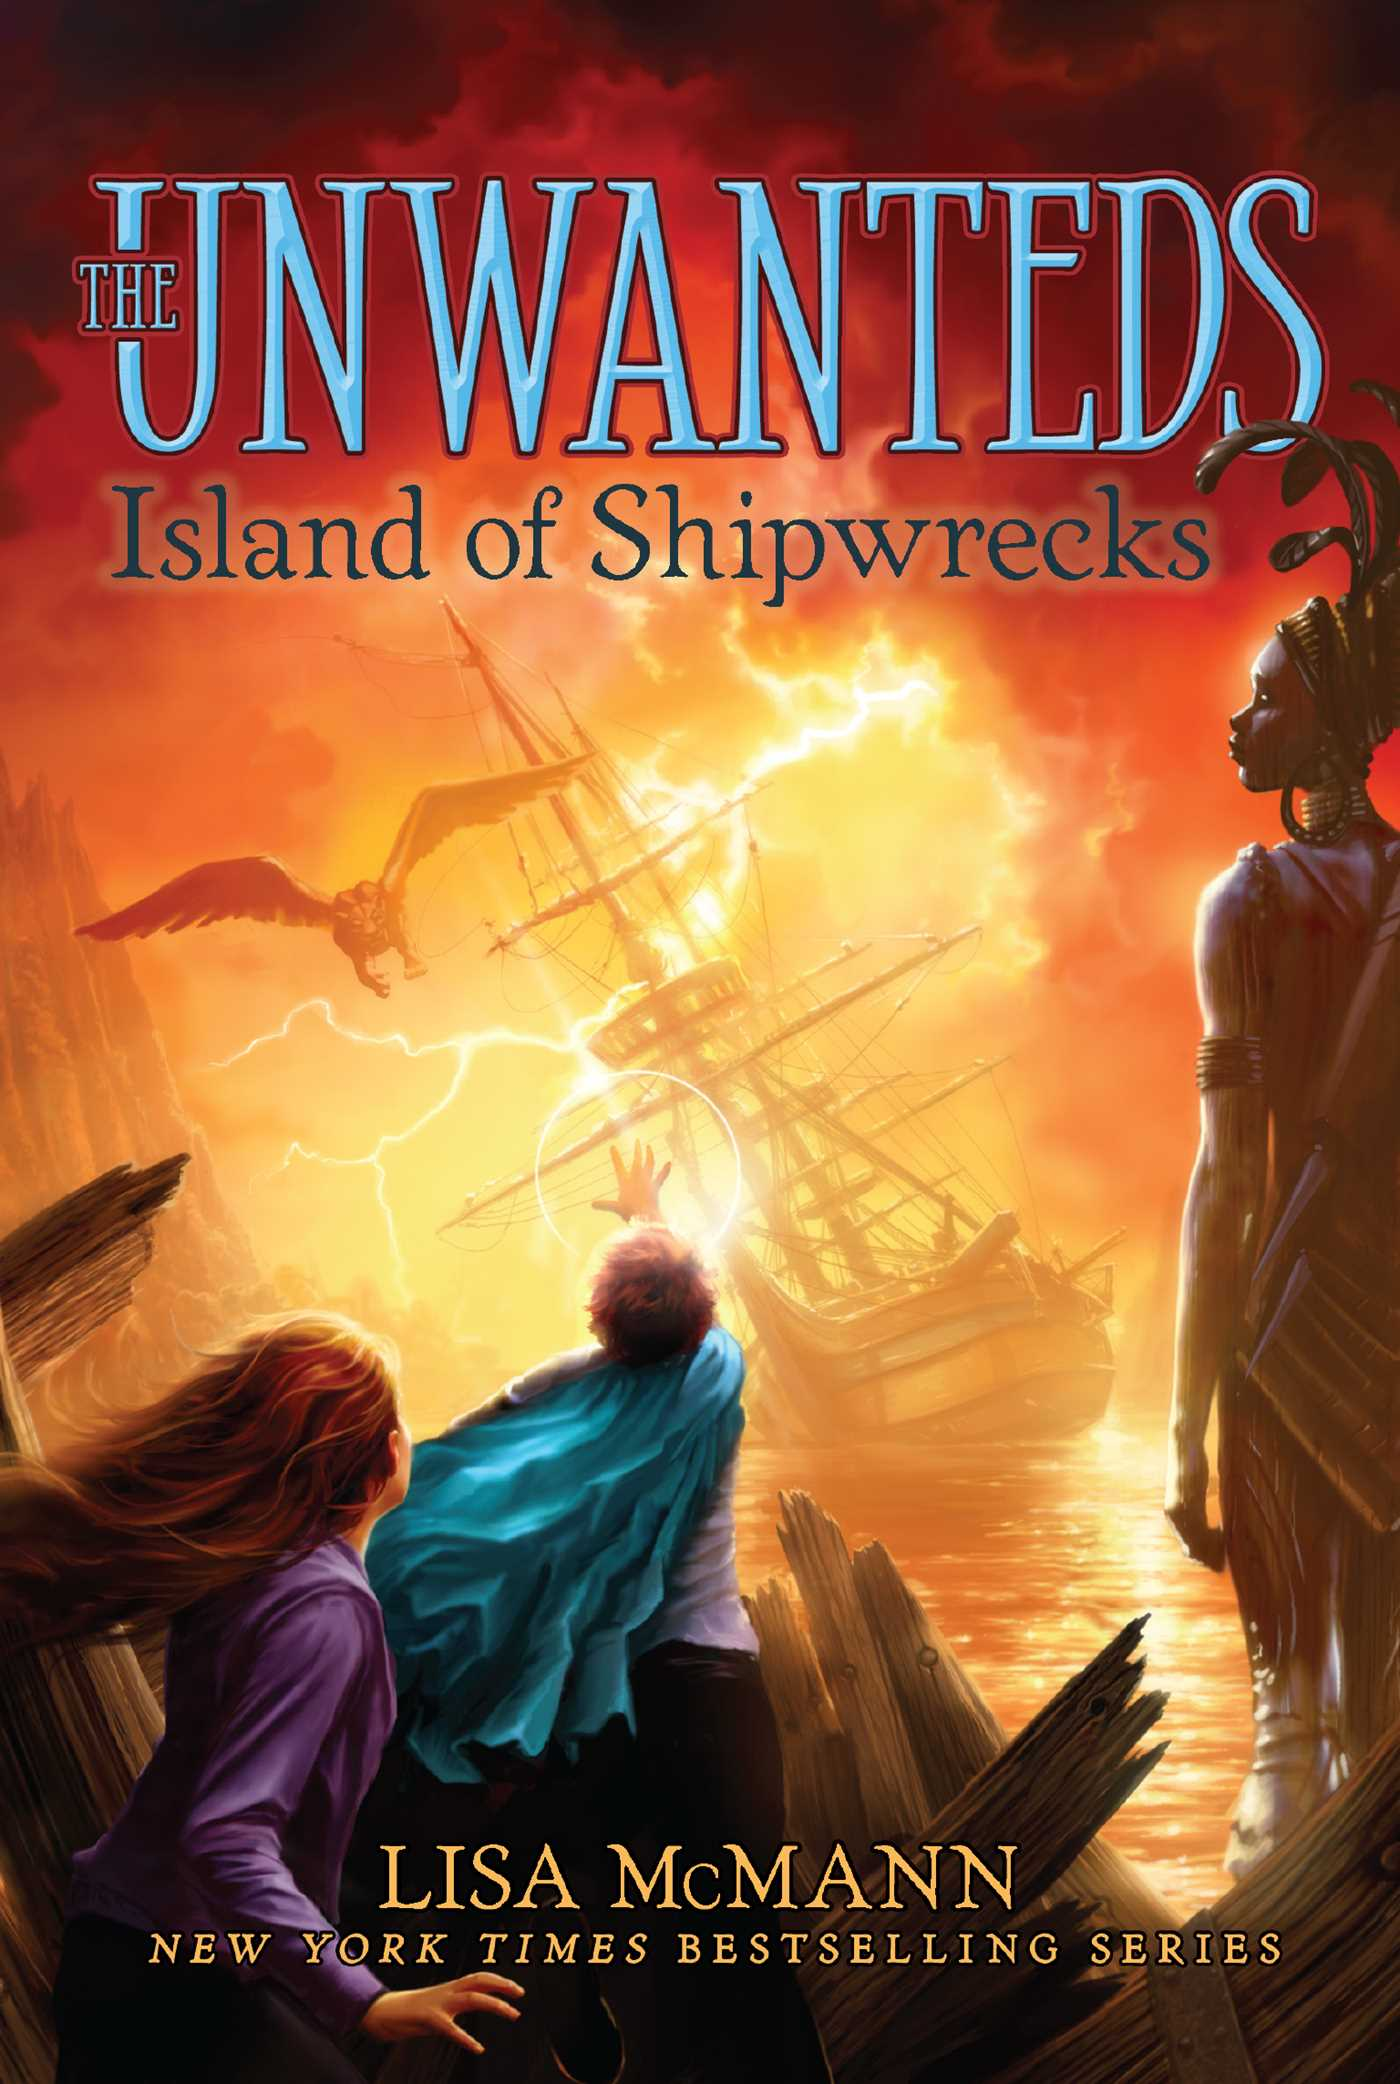 Island of shipwrecks 9781442493322 hr